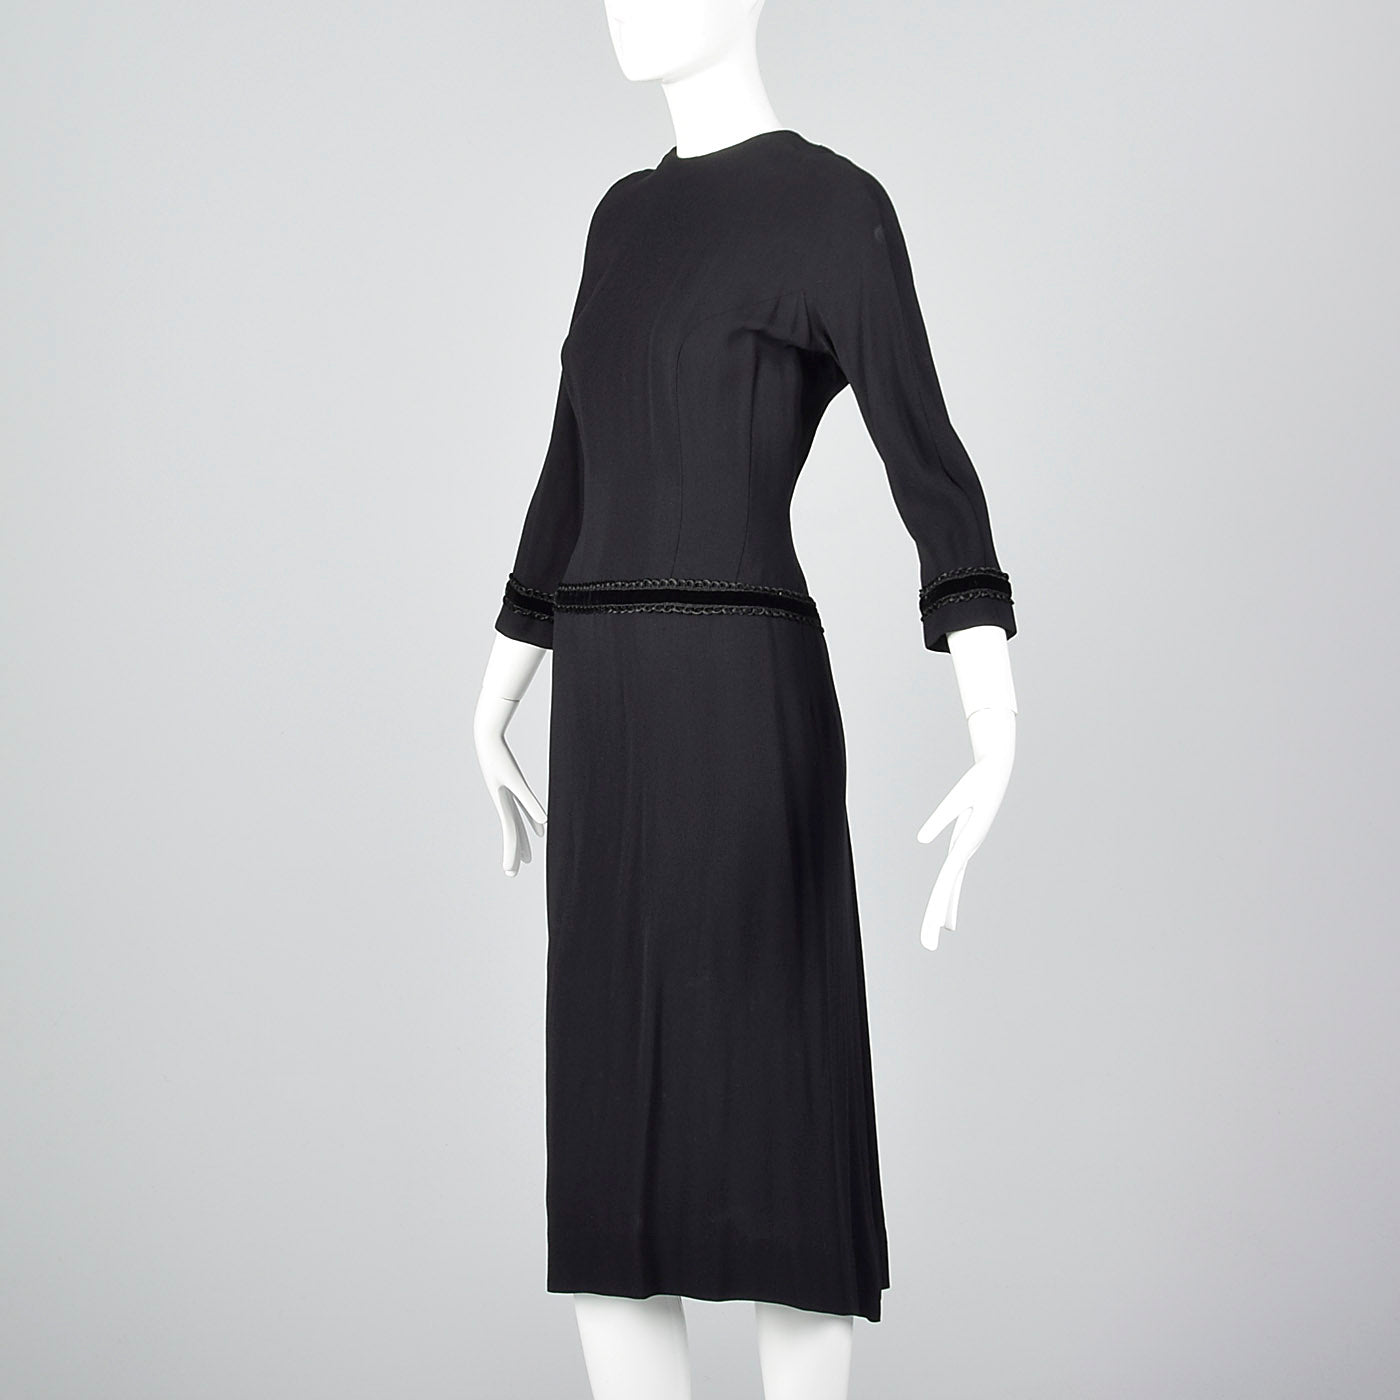 1950s Black Dress with Drop Waist and Bustle Train